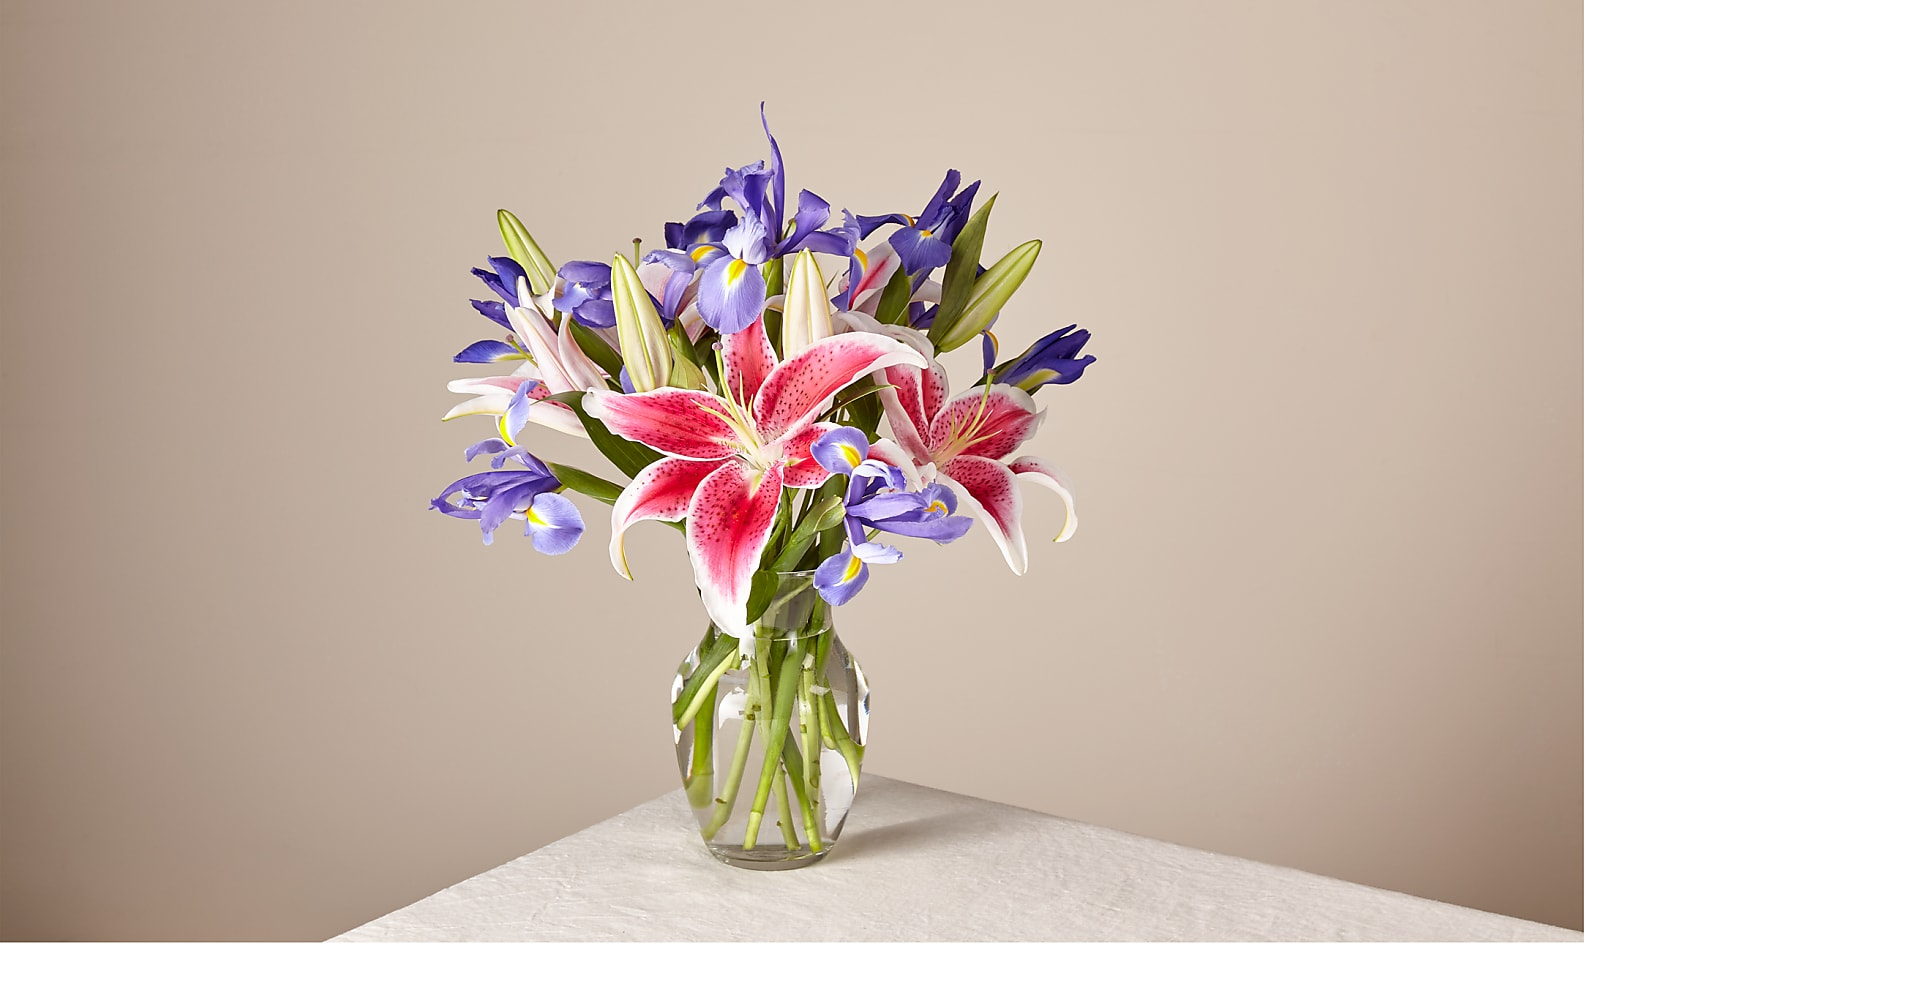 Belle of the Ball Bouquet with Vase - Image 1 Of 2